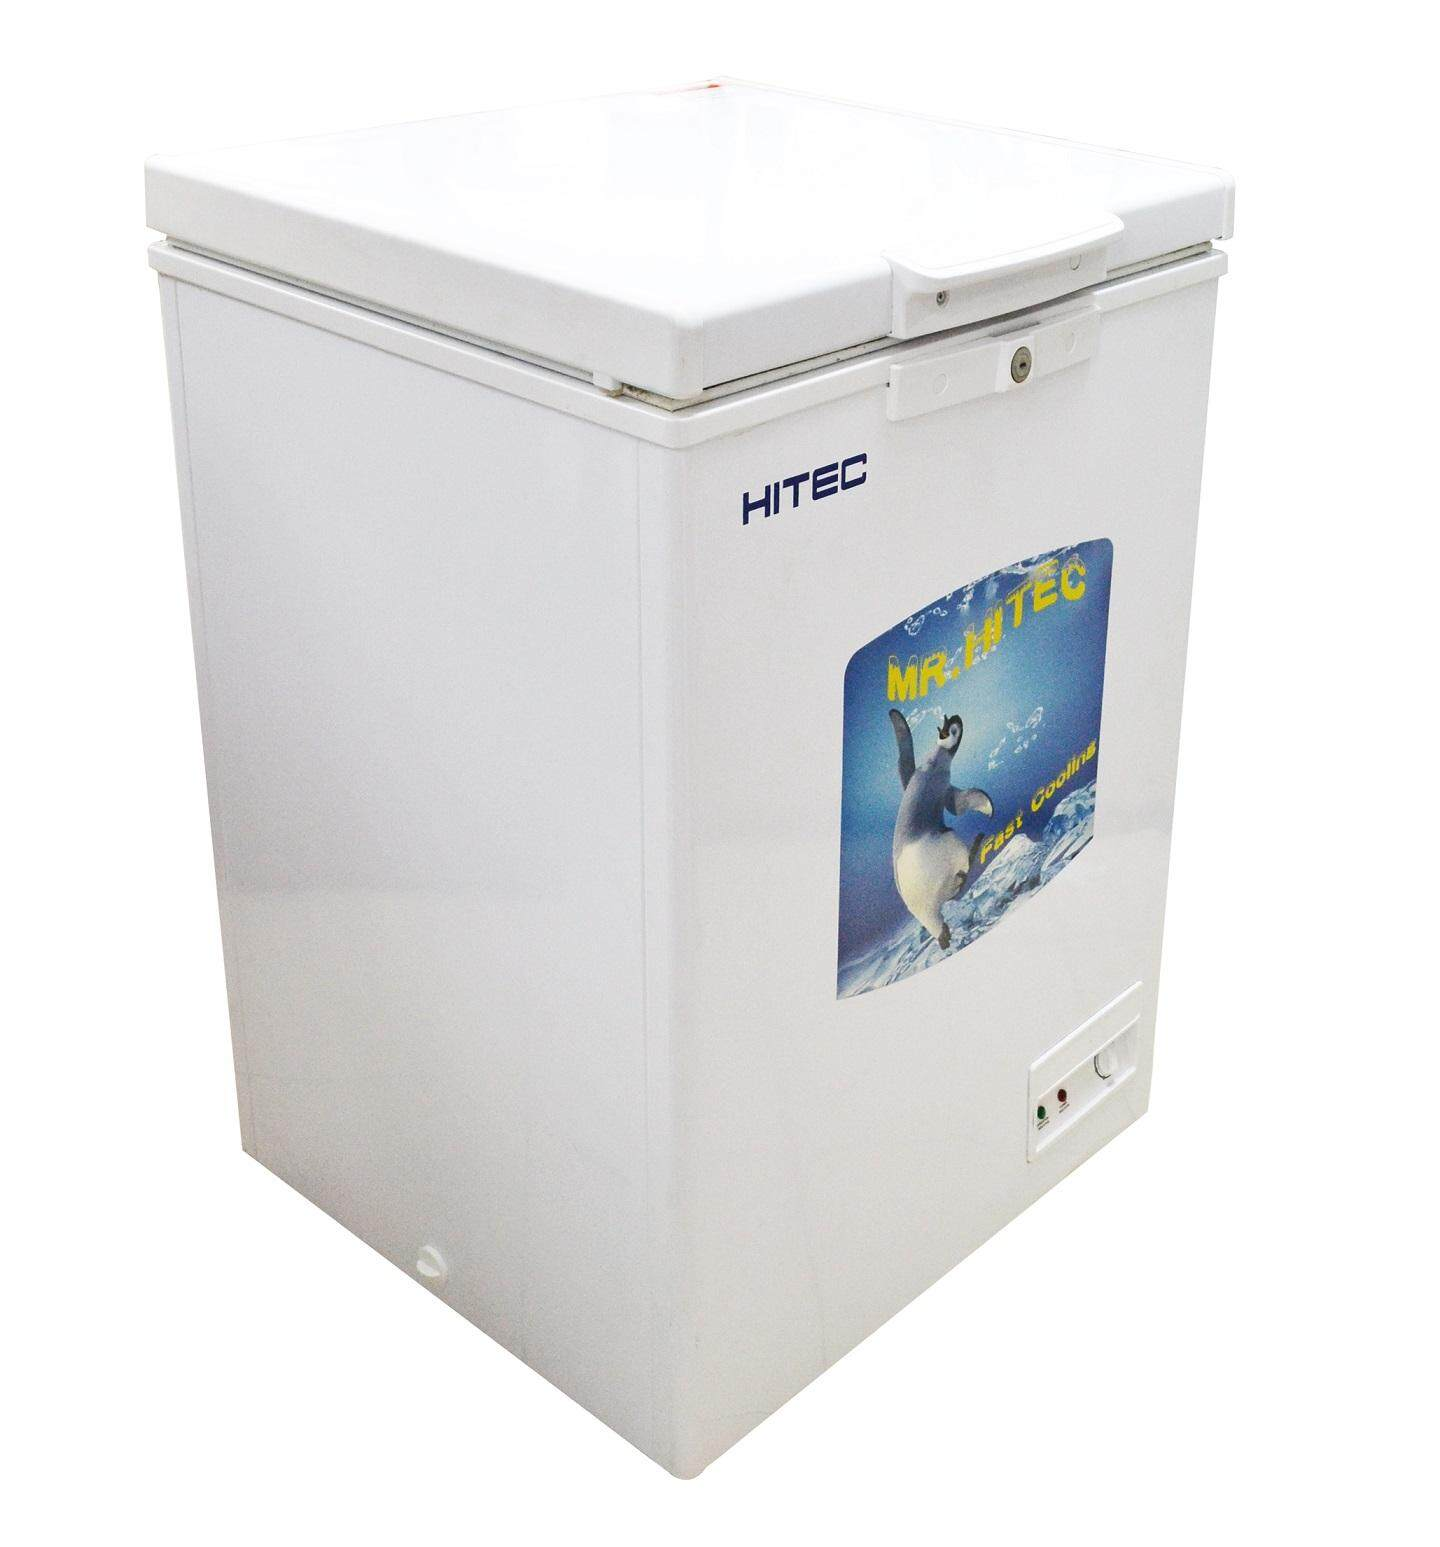 Hitec HFZ-C280B Chest Freezer 230L White